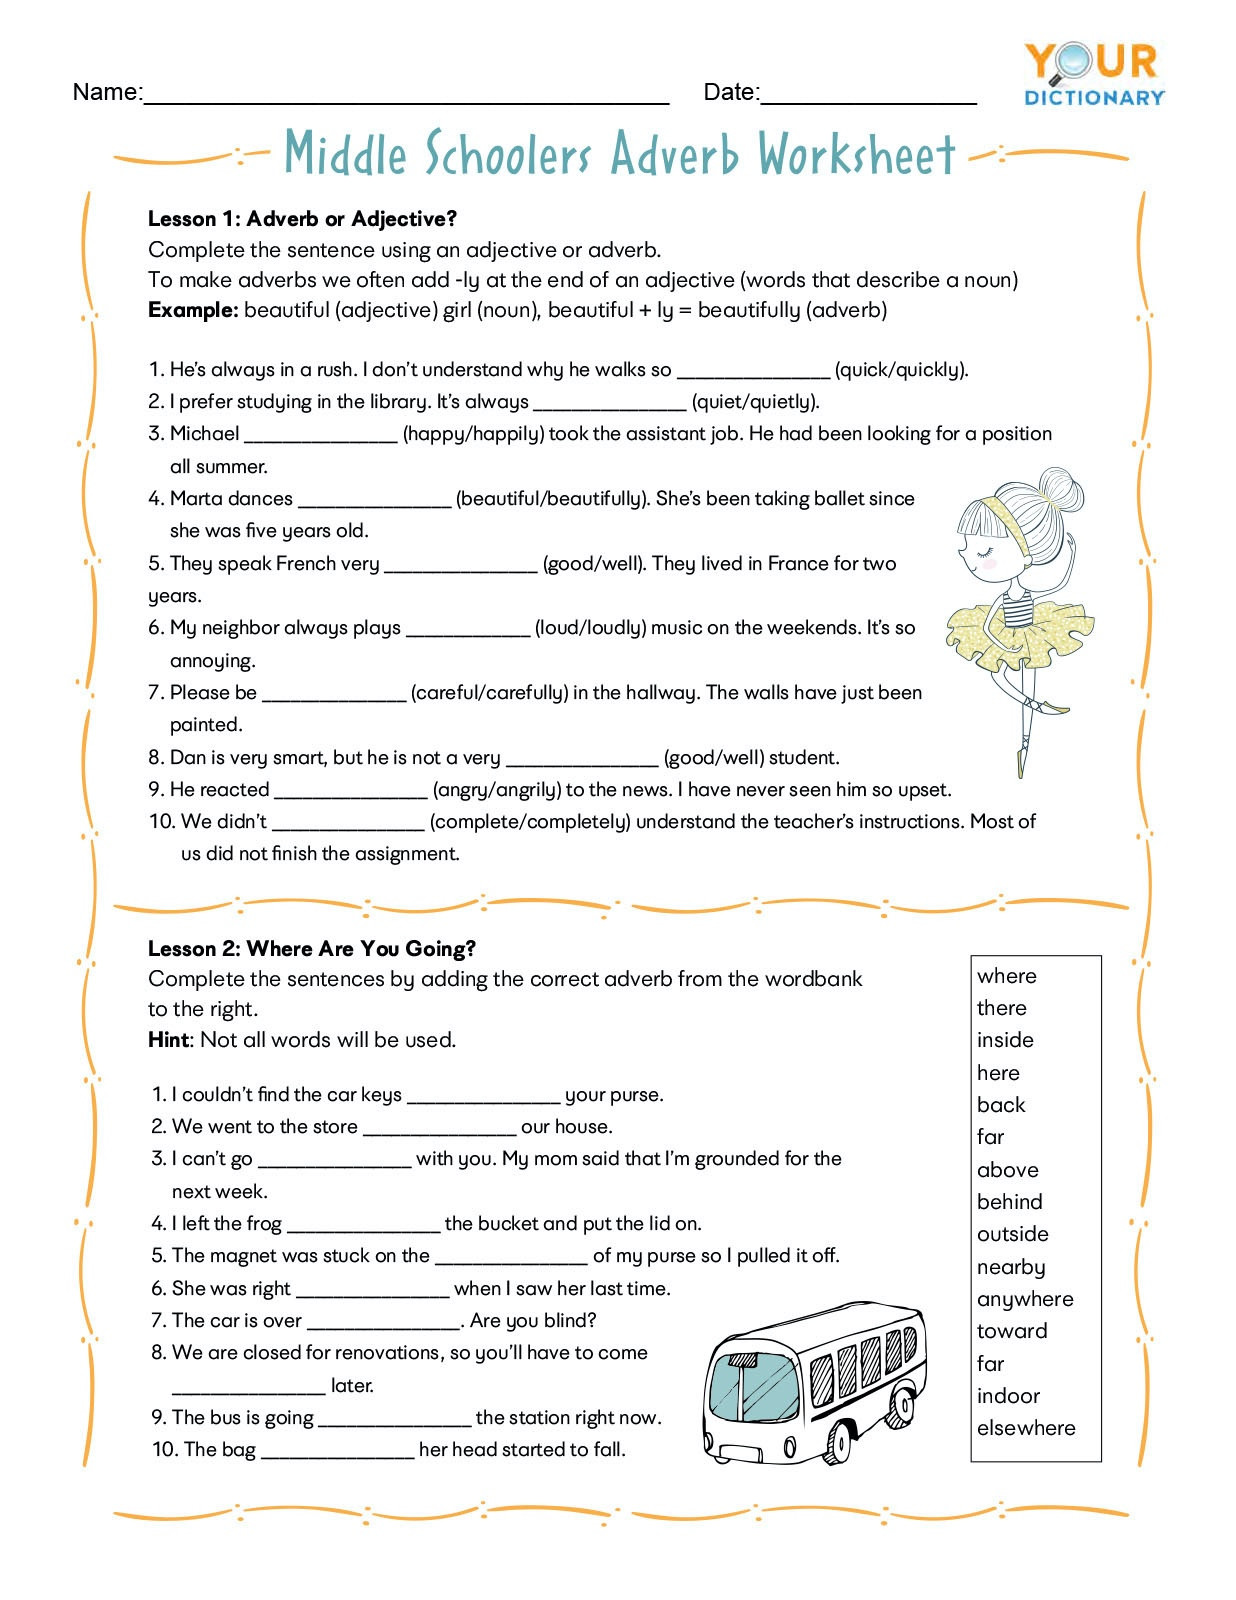 Sequencing Worksheets for Middle School Adverb Worksheets for Elementary and Middle School